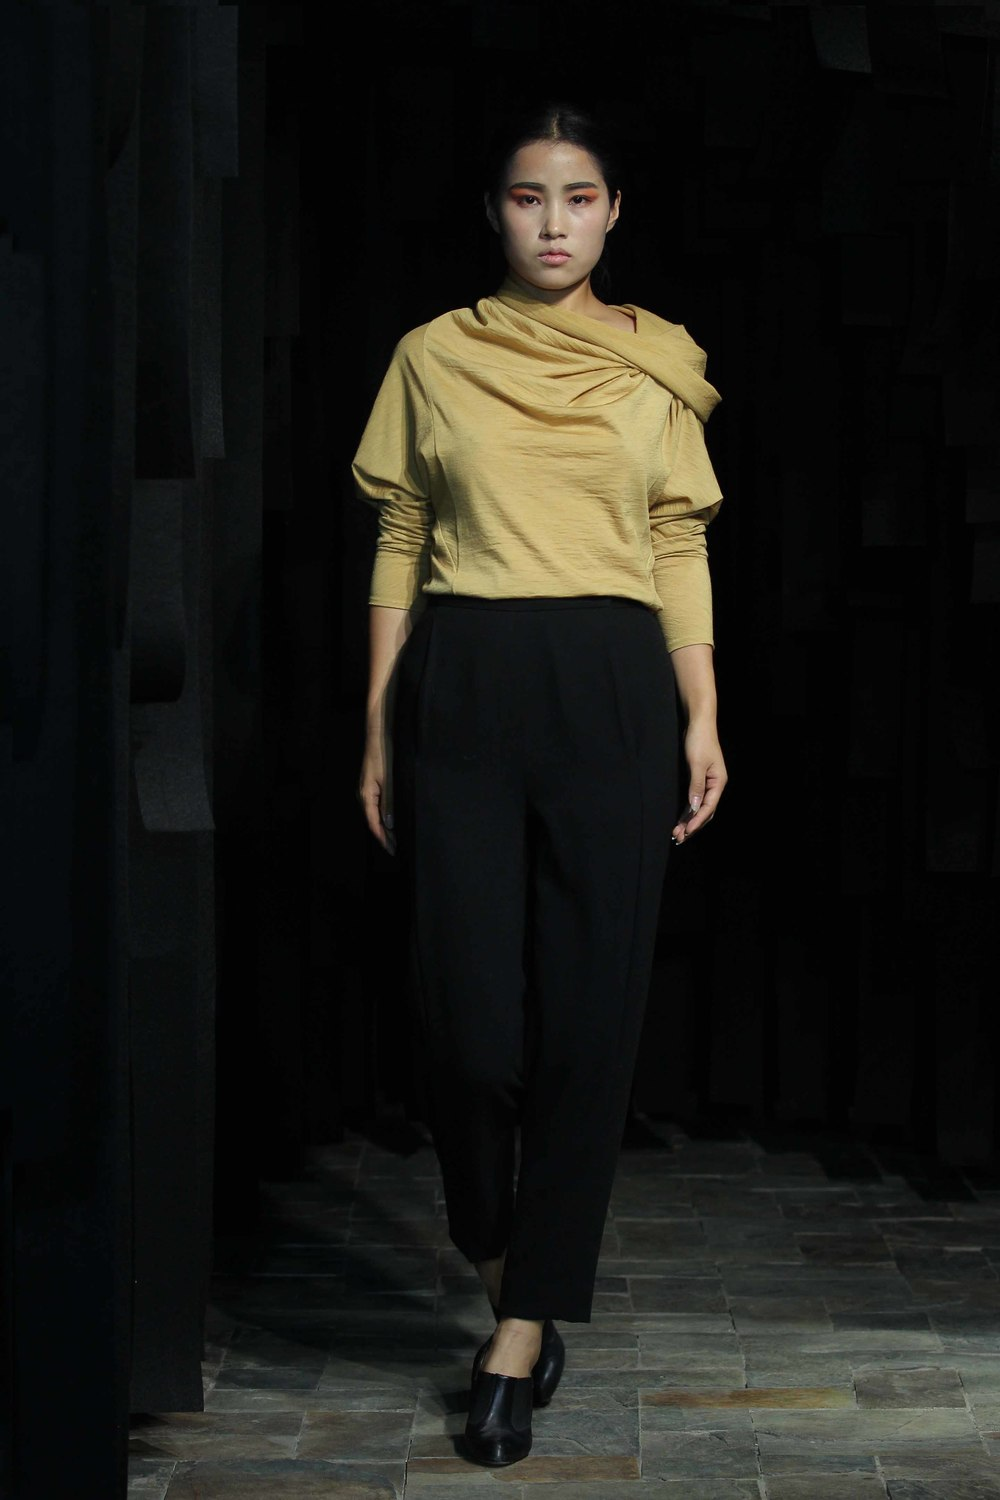 Natural hand-dyed woolen jersey top with tubular collar // black woolen pants